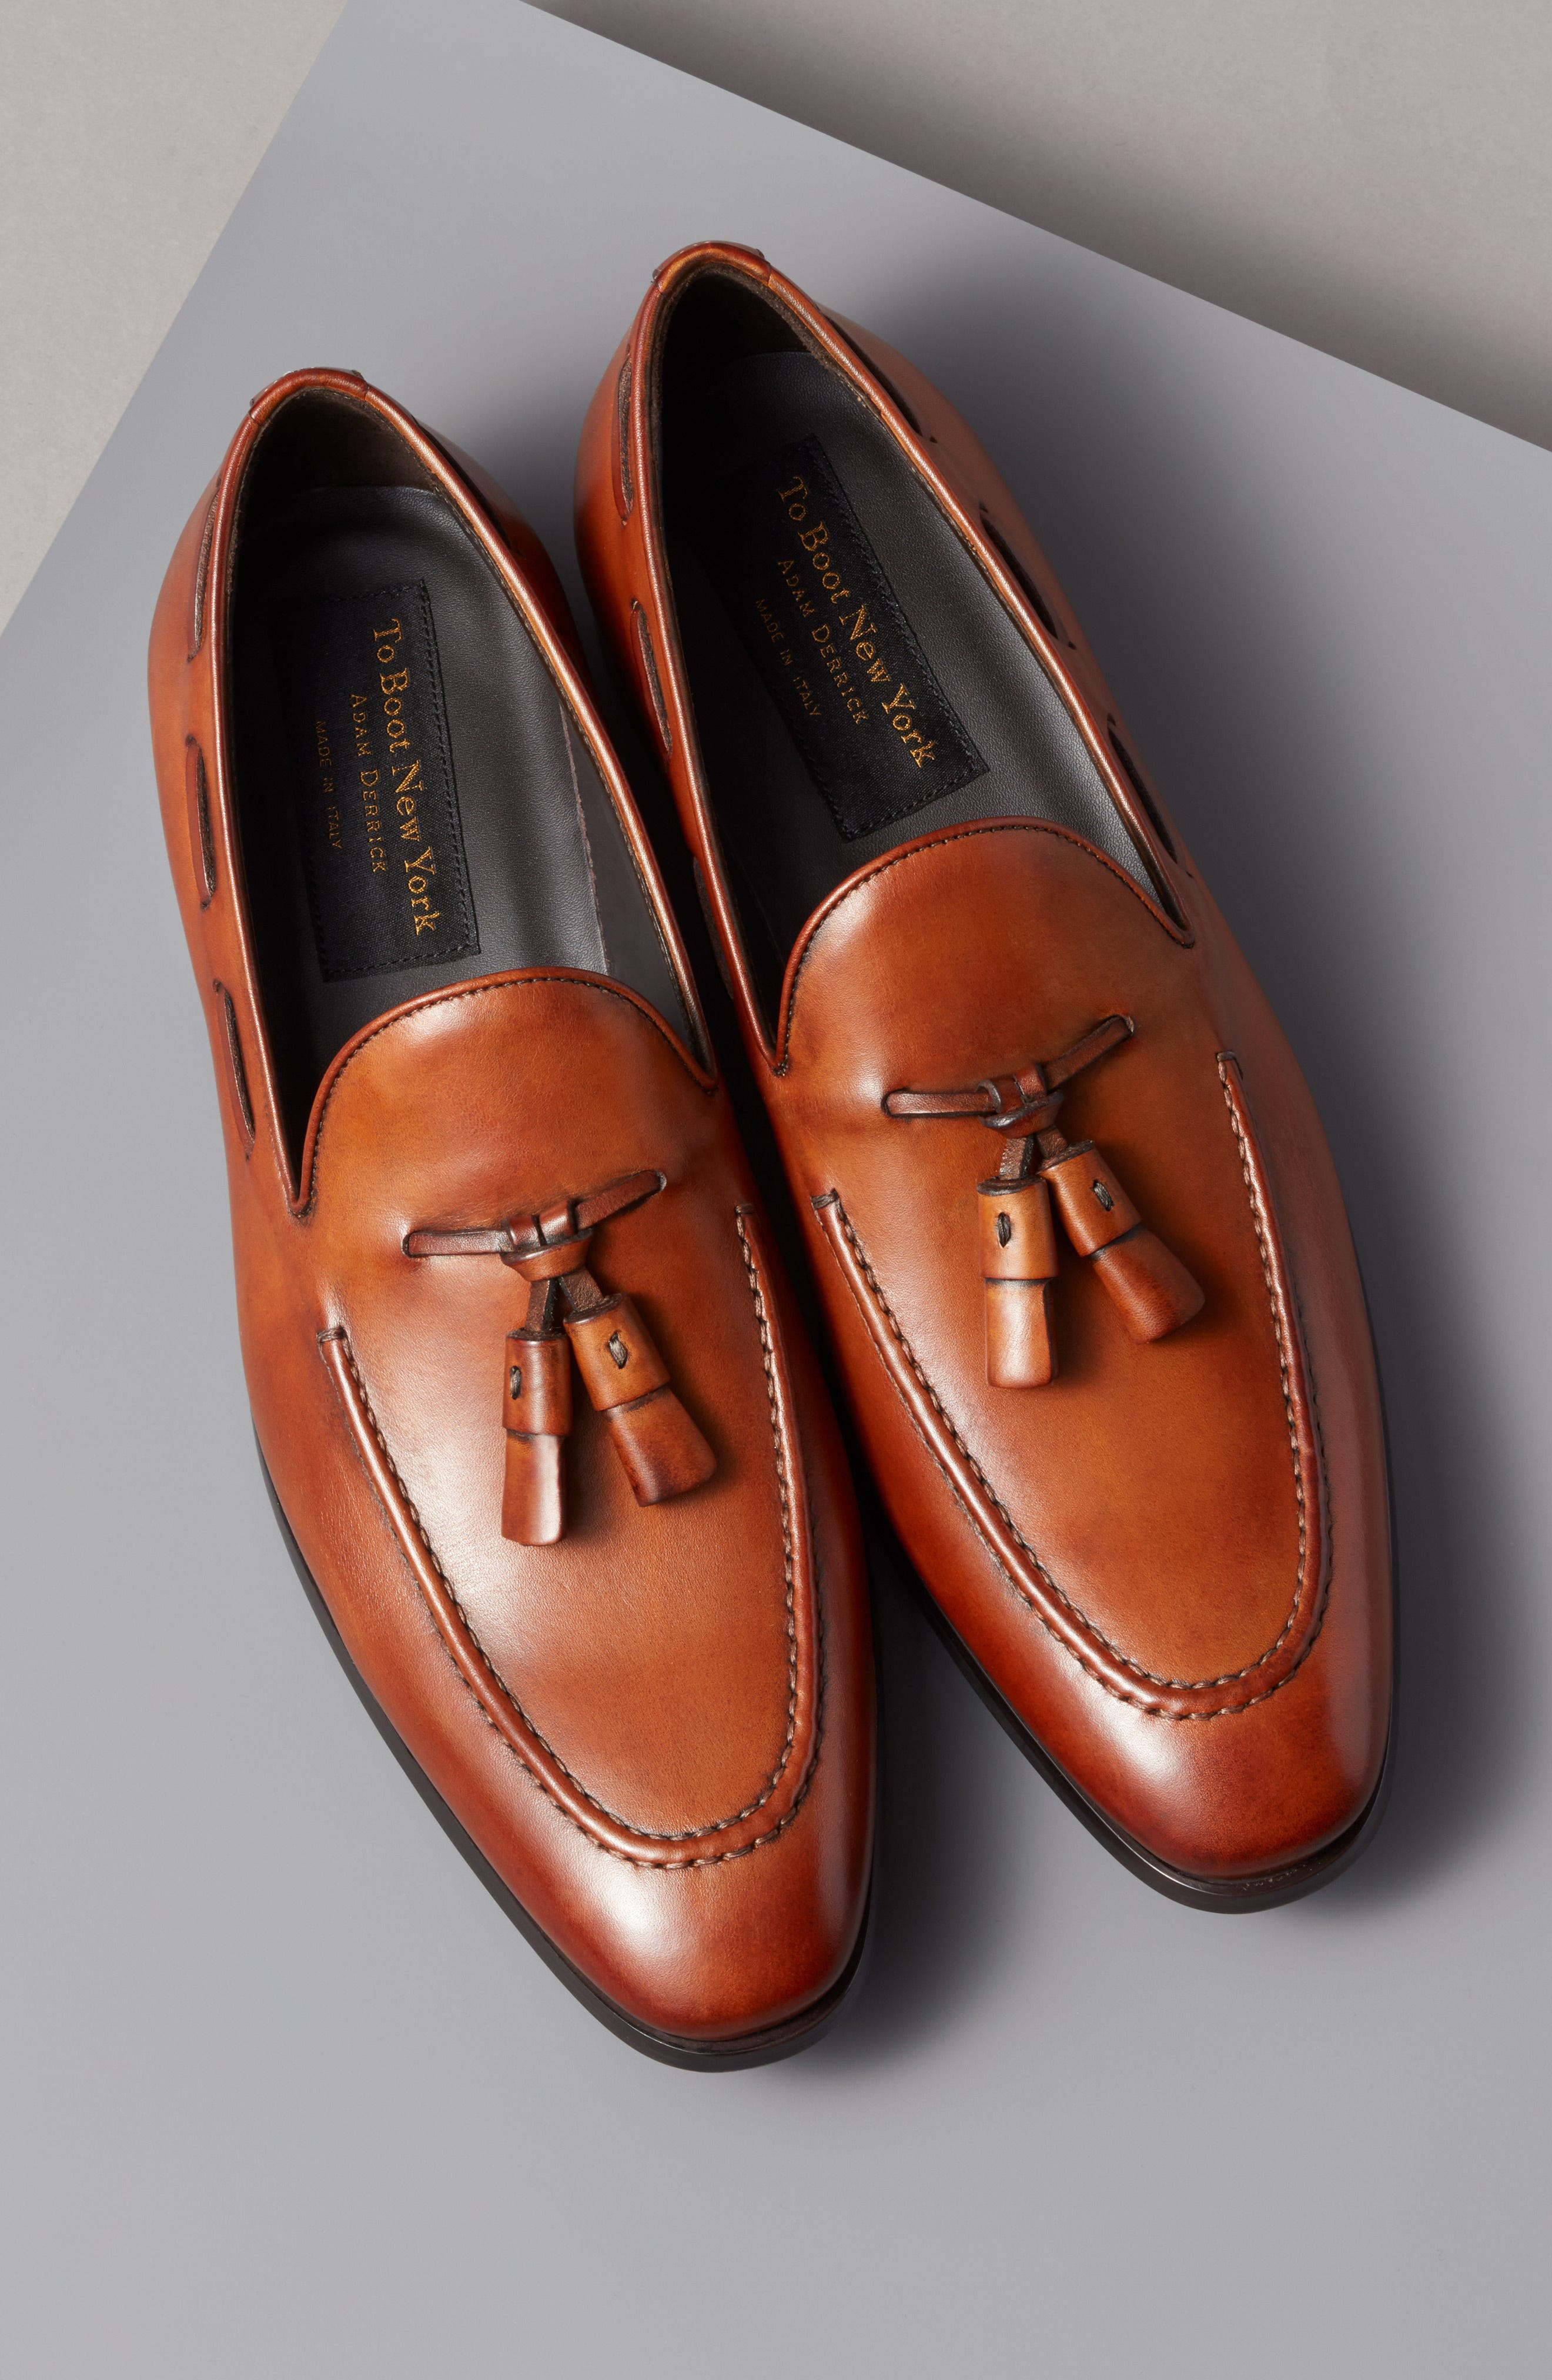 Barclay Tassel Loafer,                             Alternate thumbnail 7, color,                             COGNAC LEATHER